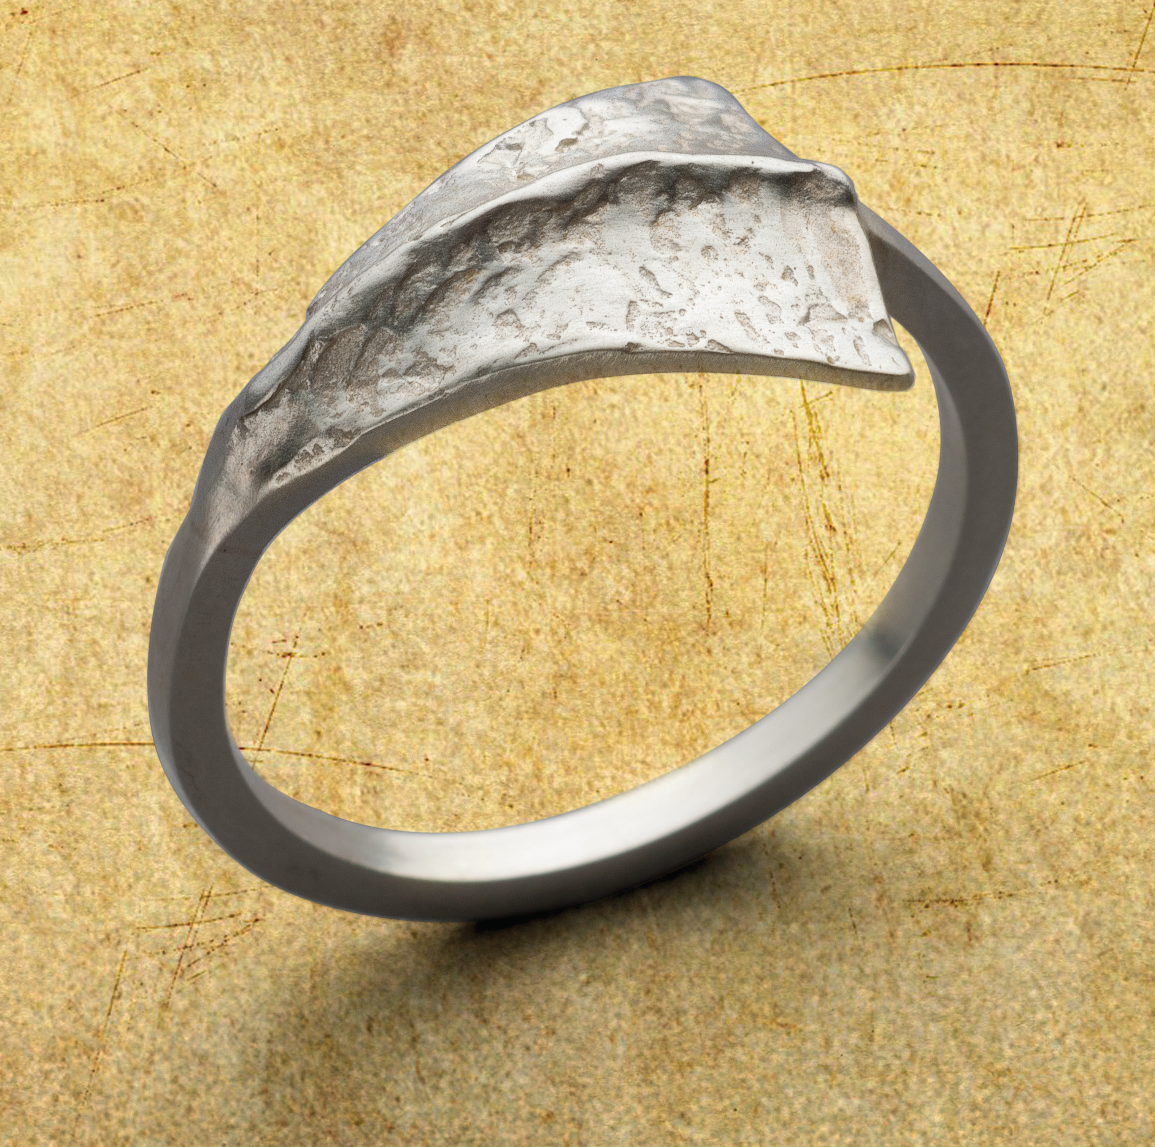 Amanda Hagerman has adopted as her favorite silver the late 20th century development of Argentium Sterling Silver, and shows how to use it in her project Flare for Your Finger in Lapidary Journal Jewelry Artist January/February 2019. Photo: Jim Lawson